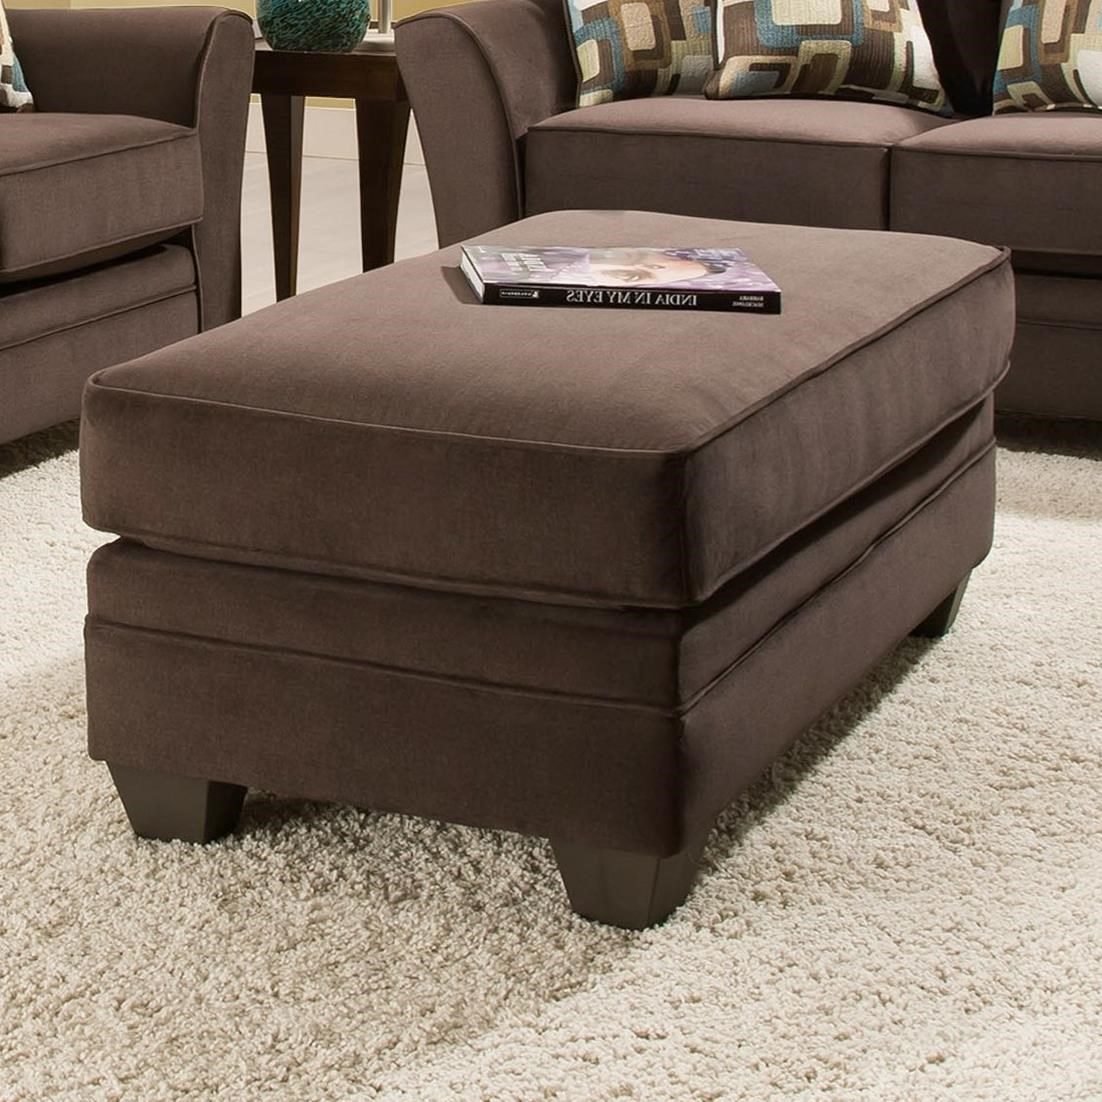 3850 Ottoman by Peak Living at Prime Brothers Furniture